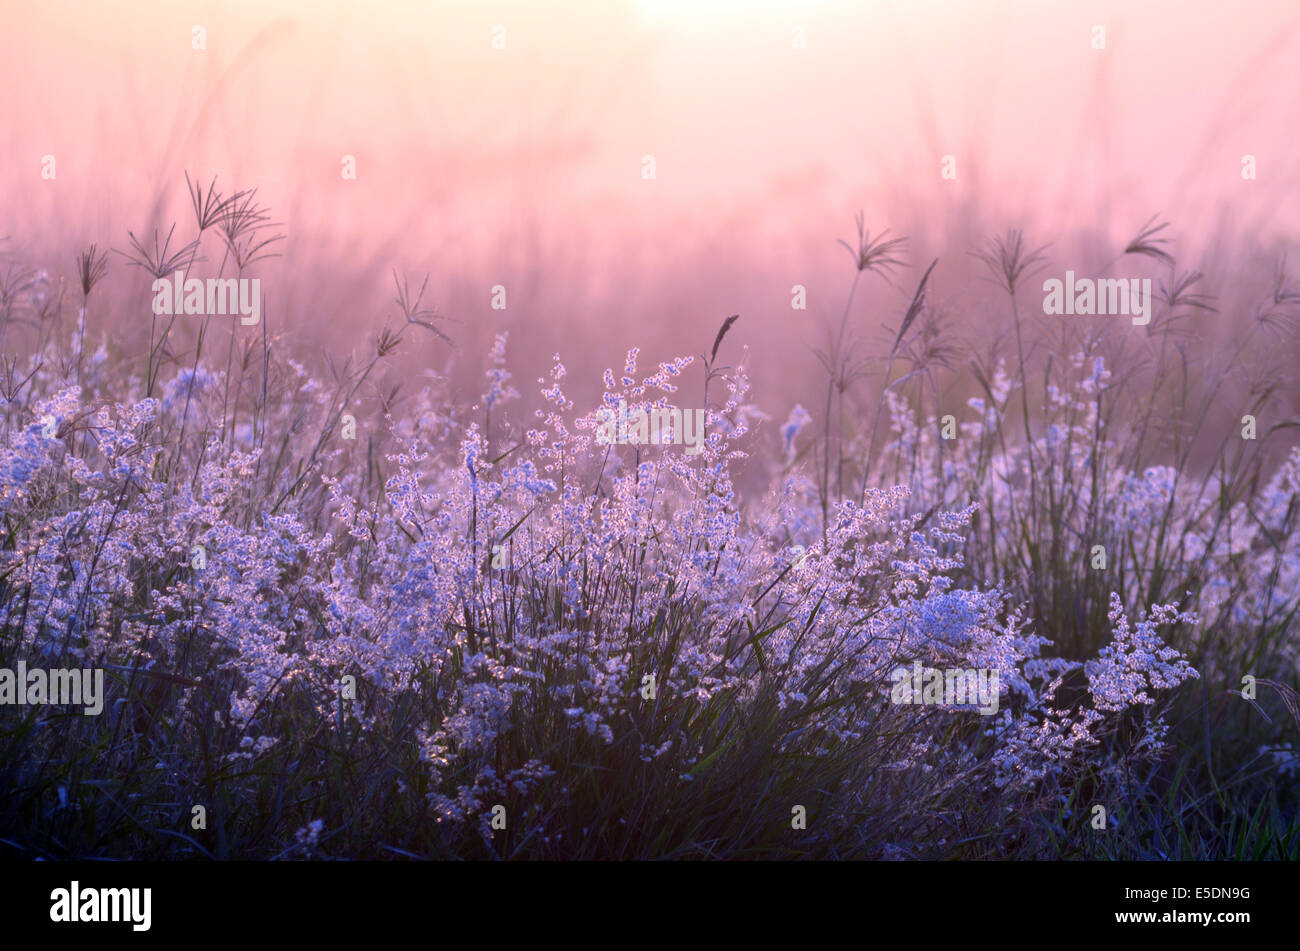 Common roadside plant covered in fog and back lit by the sun at sunrise. - Stock Image